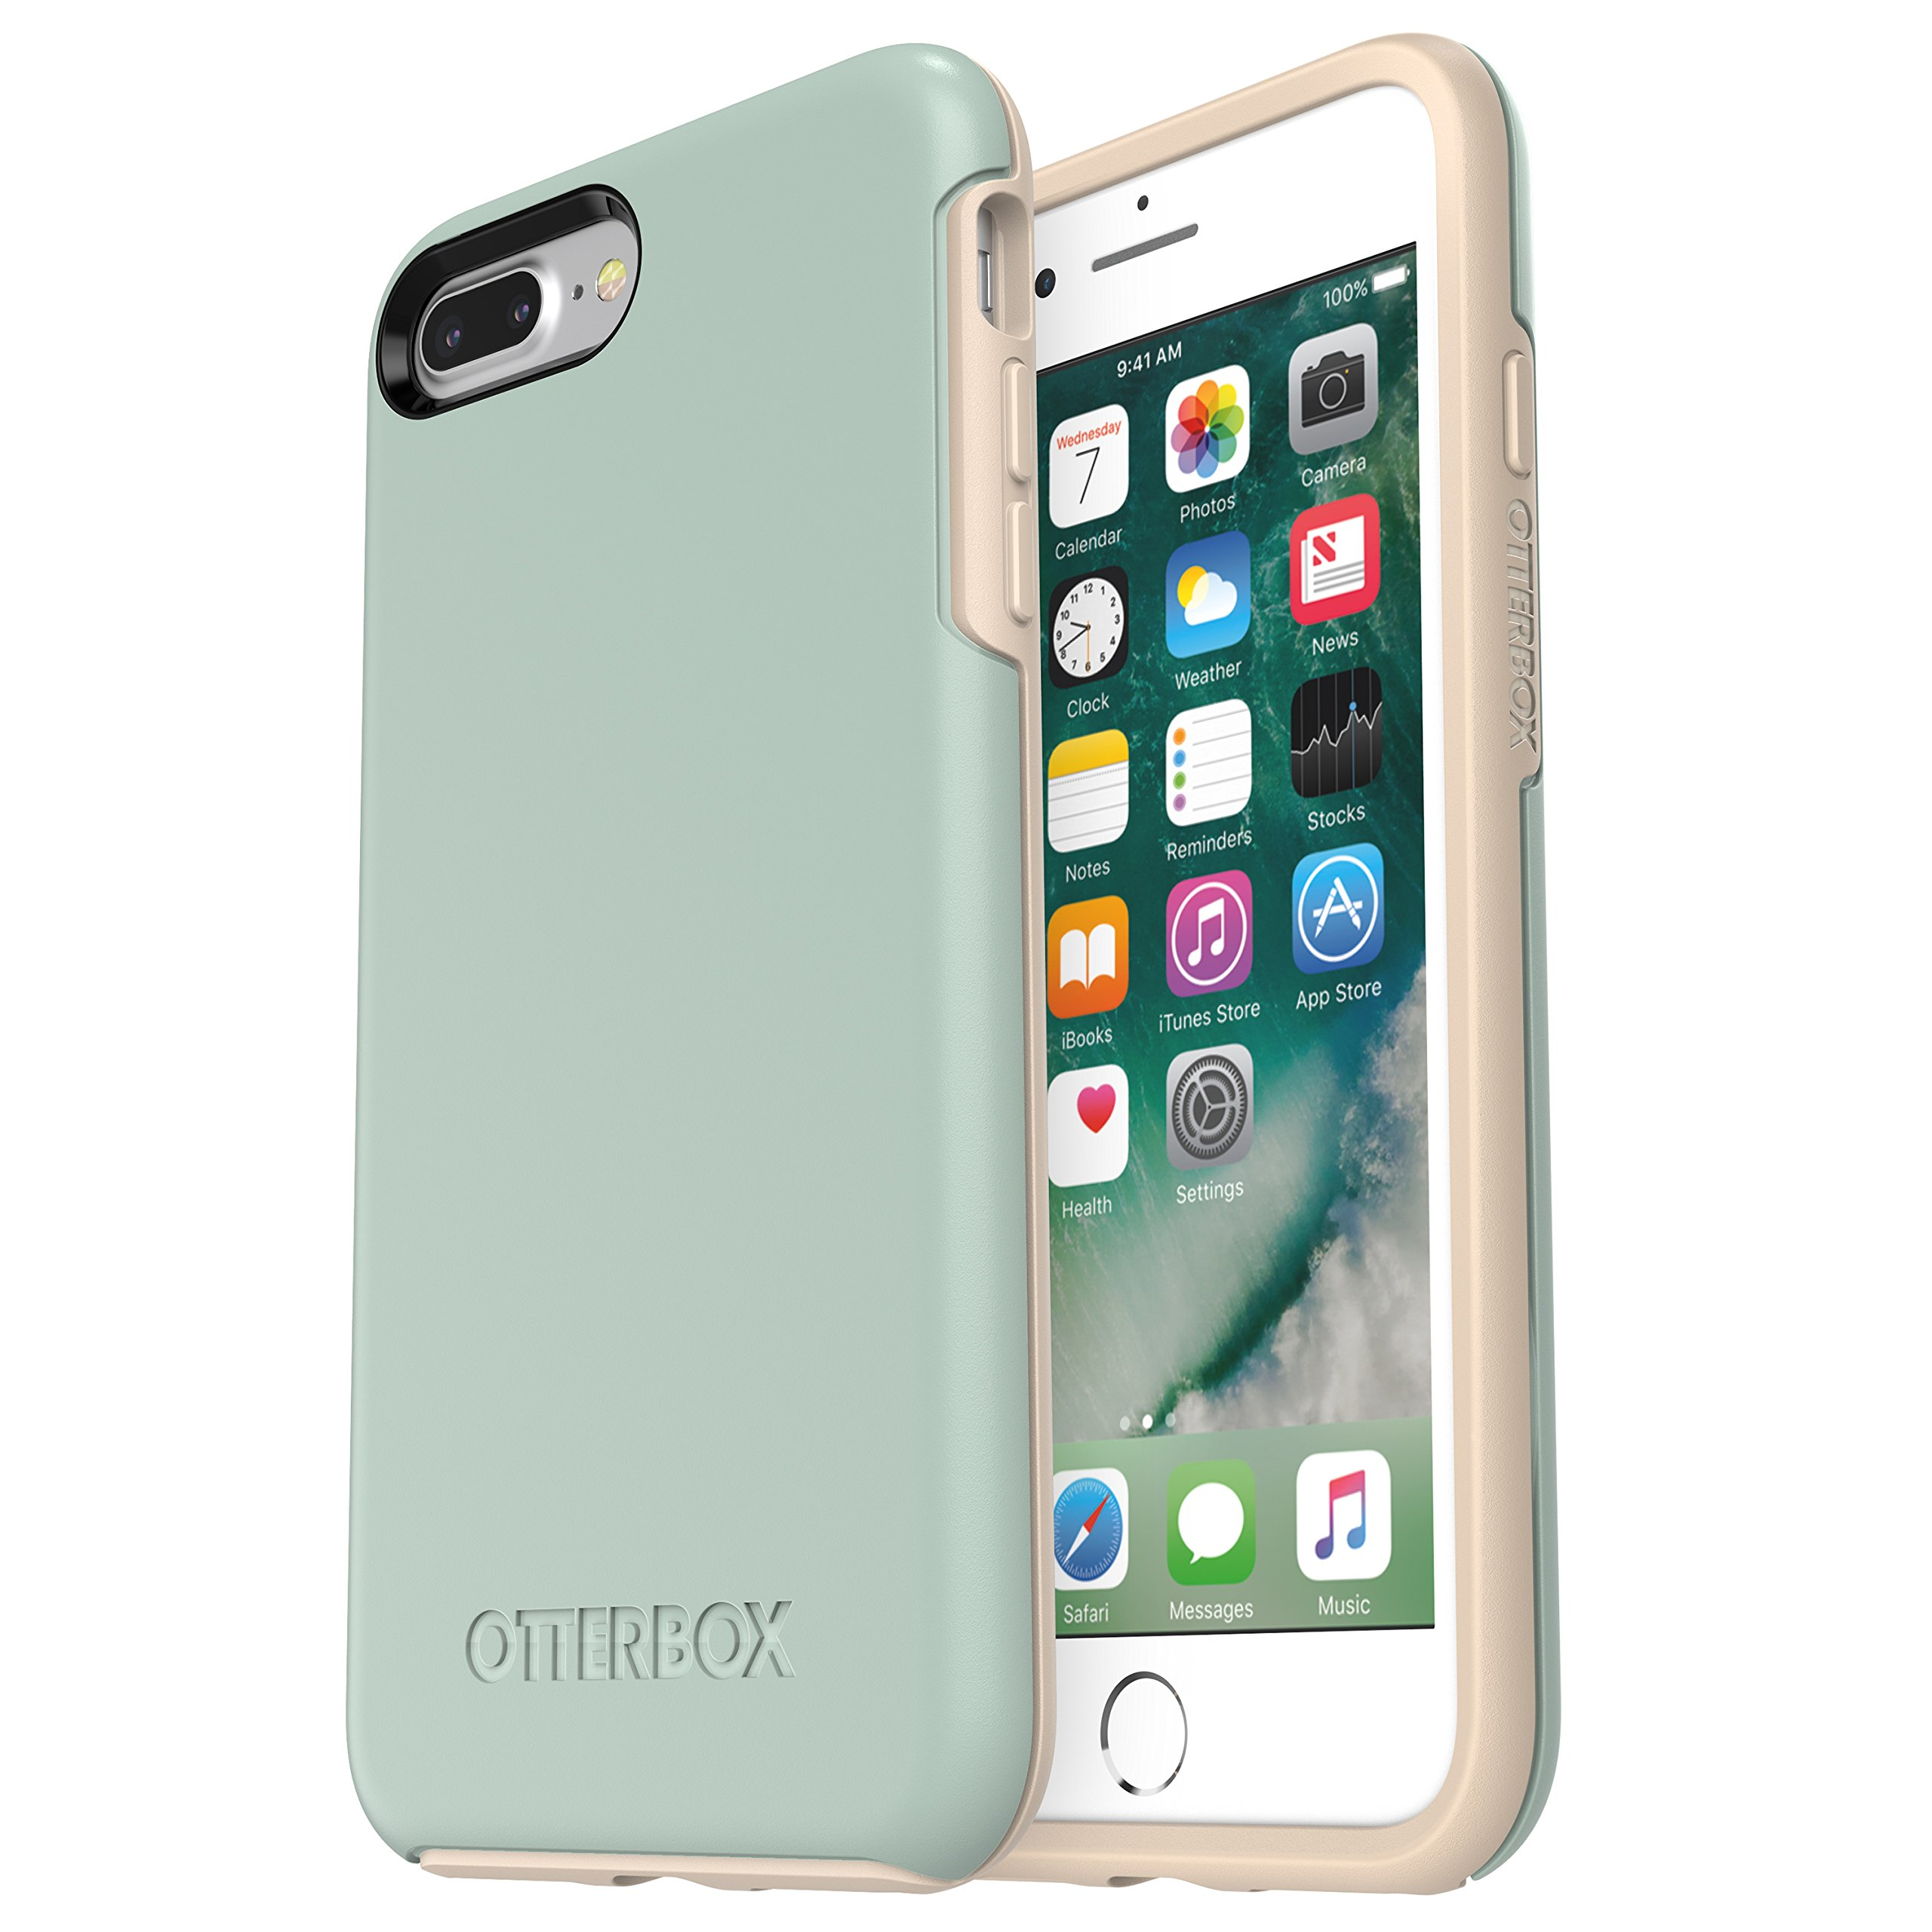 OtterBox Symmetry Series Case for iPhone 8 Plus & iPhone 7 Plus (ONLY) - Frustration Free Packaging - Muted Waters (SURF Spray/Silver Lining)